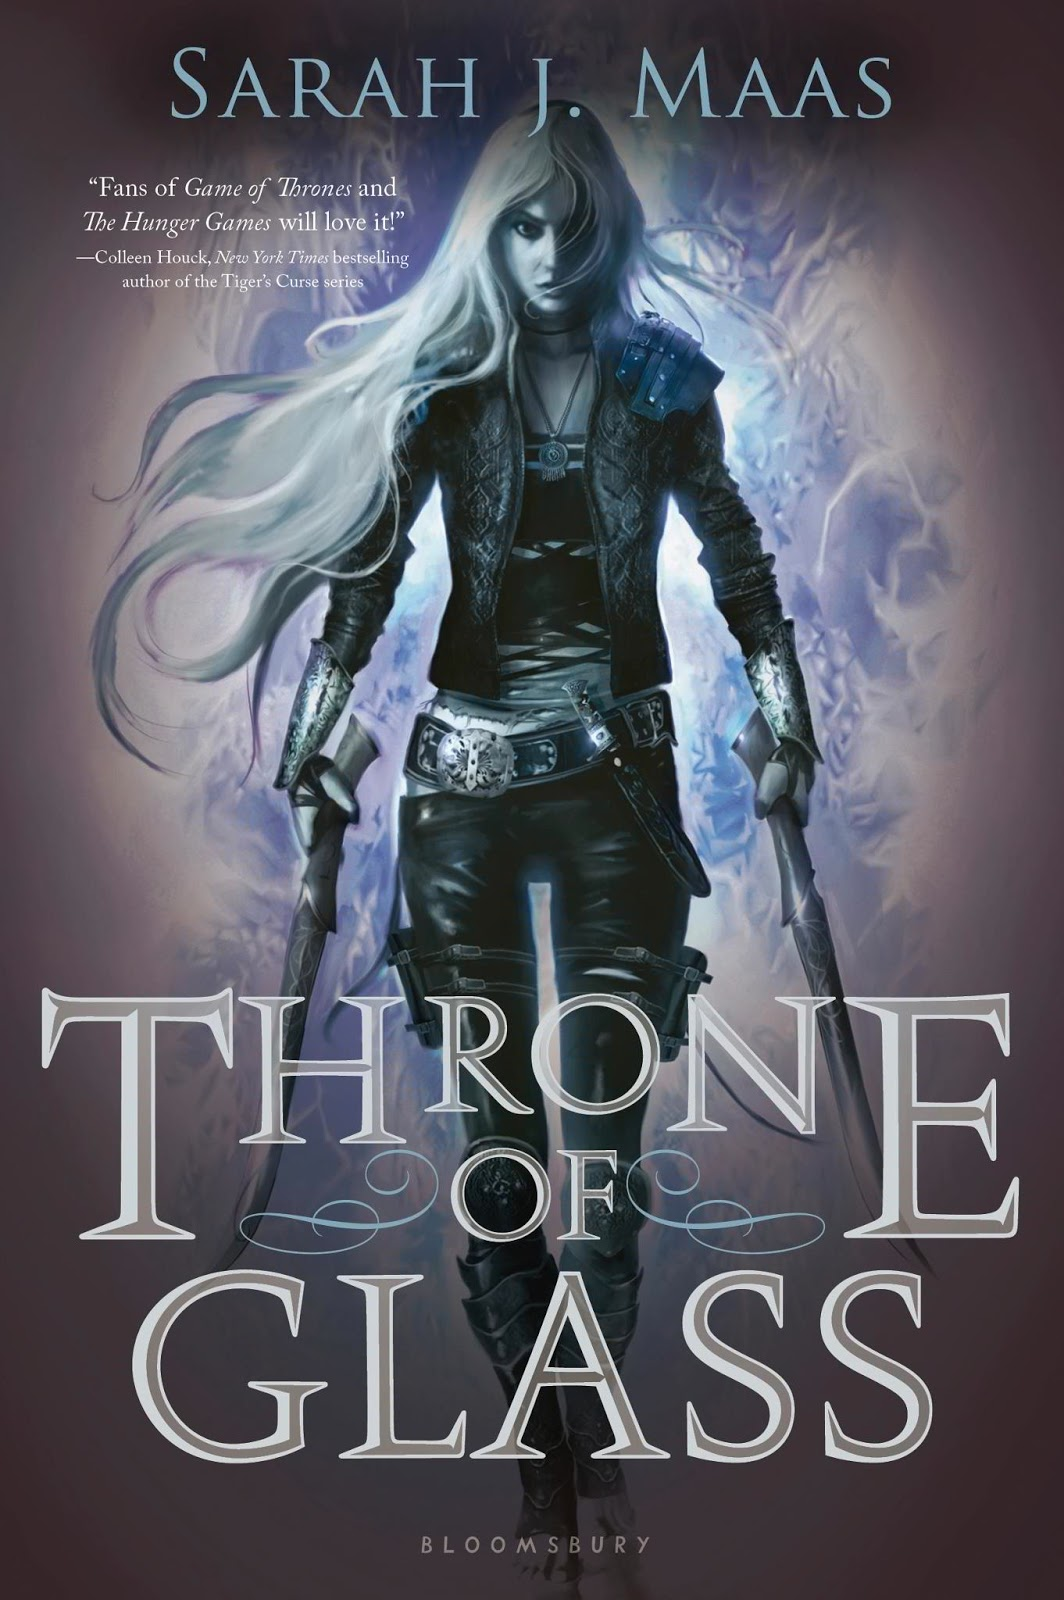 http://nothingbutn9erz.blogspot.co.at/2015/03/throne-of-glass-sarah-j-maas.html